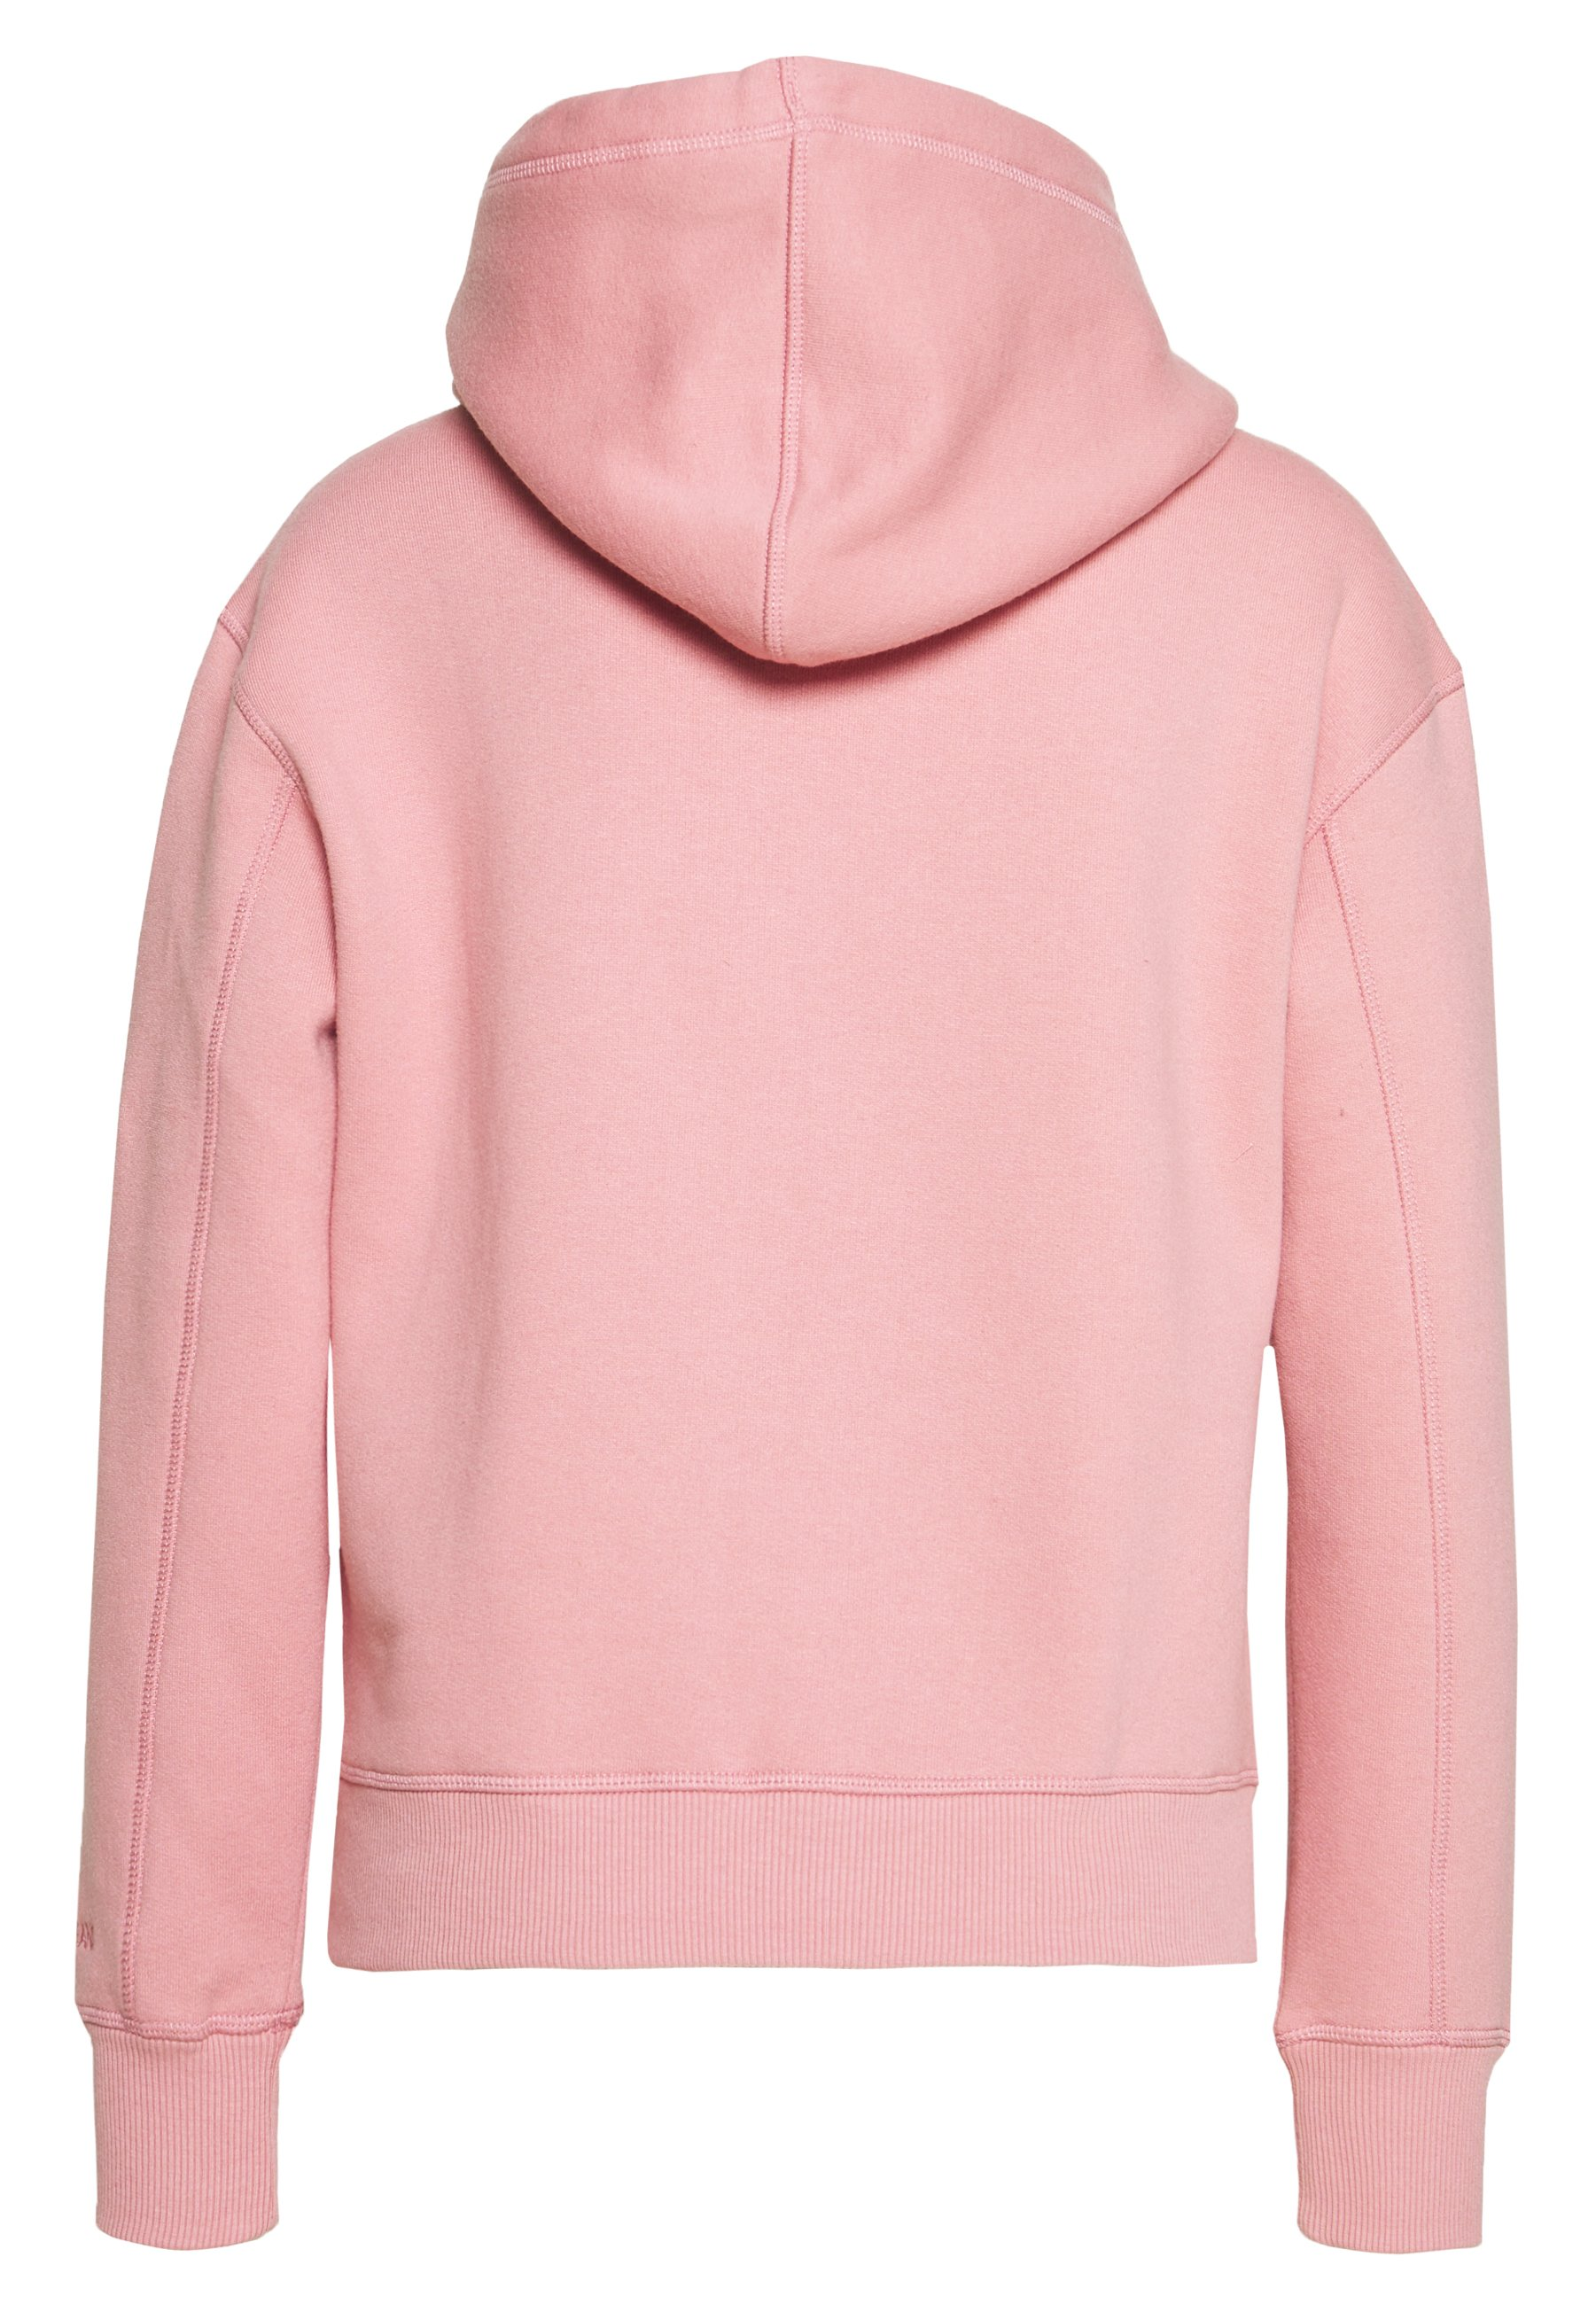 Calvin Klein Jeans Embroidery Hoodie - Brandied Apricot